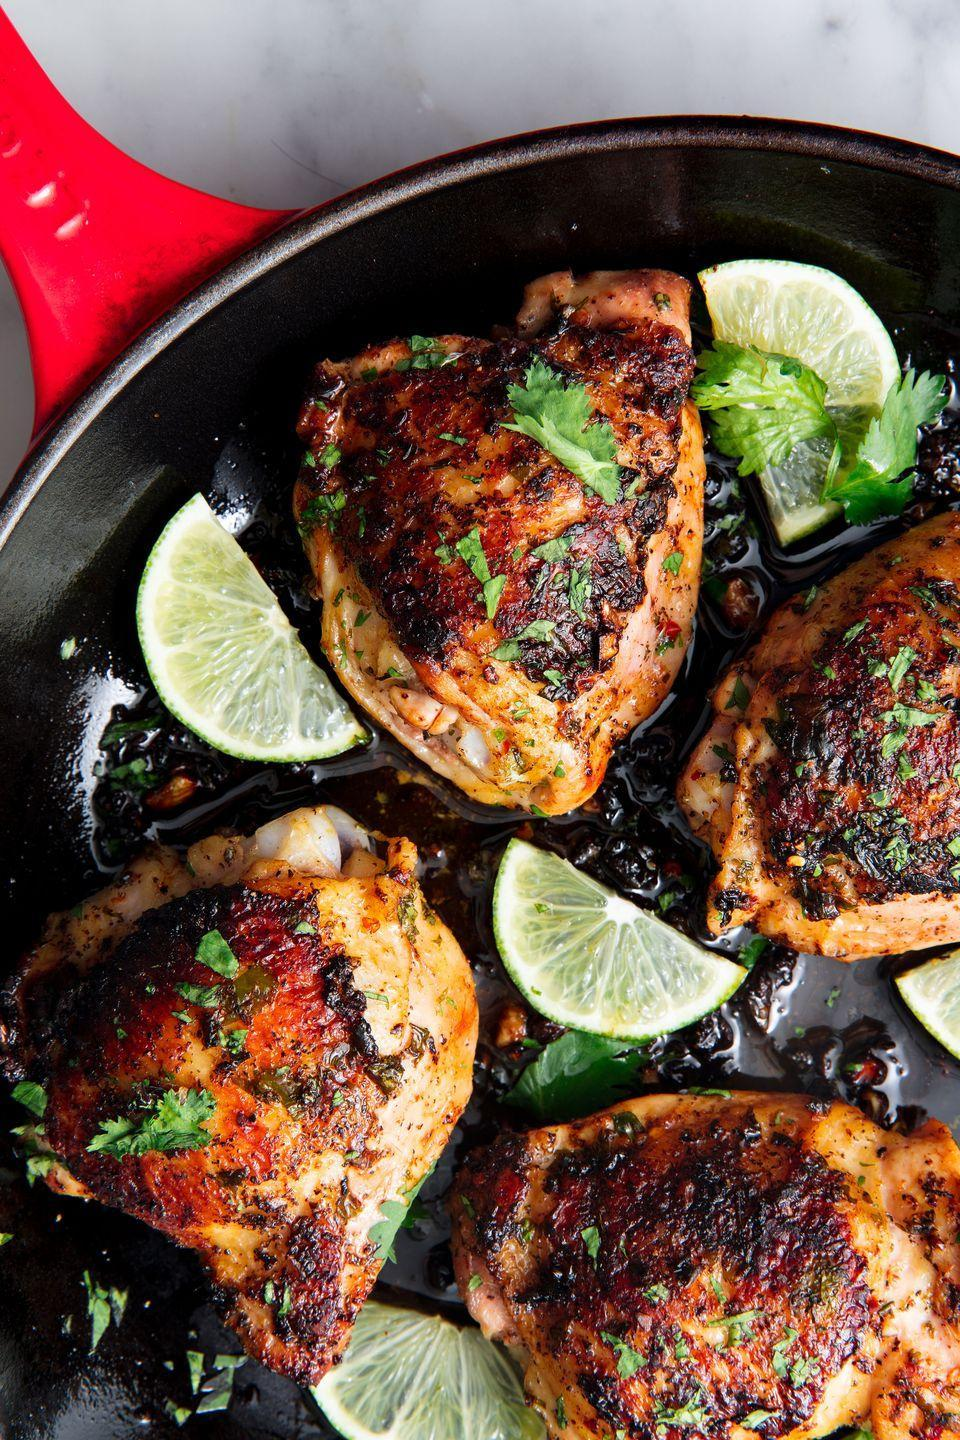 """<p><span>We'll never get tired of this flavor combo.</span></p><p><span>Get the recipe from </span><a href=""""https://www.delish.com/cooking/recipe-ideas/a48247/cilantro-lime-chicken-recipe/"""" rel=""""nofollow noopener"""" target=""""_blank"""" data-ylk=""""slk:Delish"""" class=""""link rapid-noclick-resp"""">Delish</a><span>.</span><br></p>"""